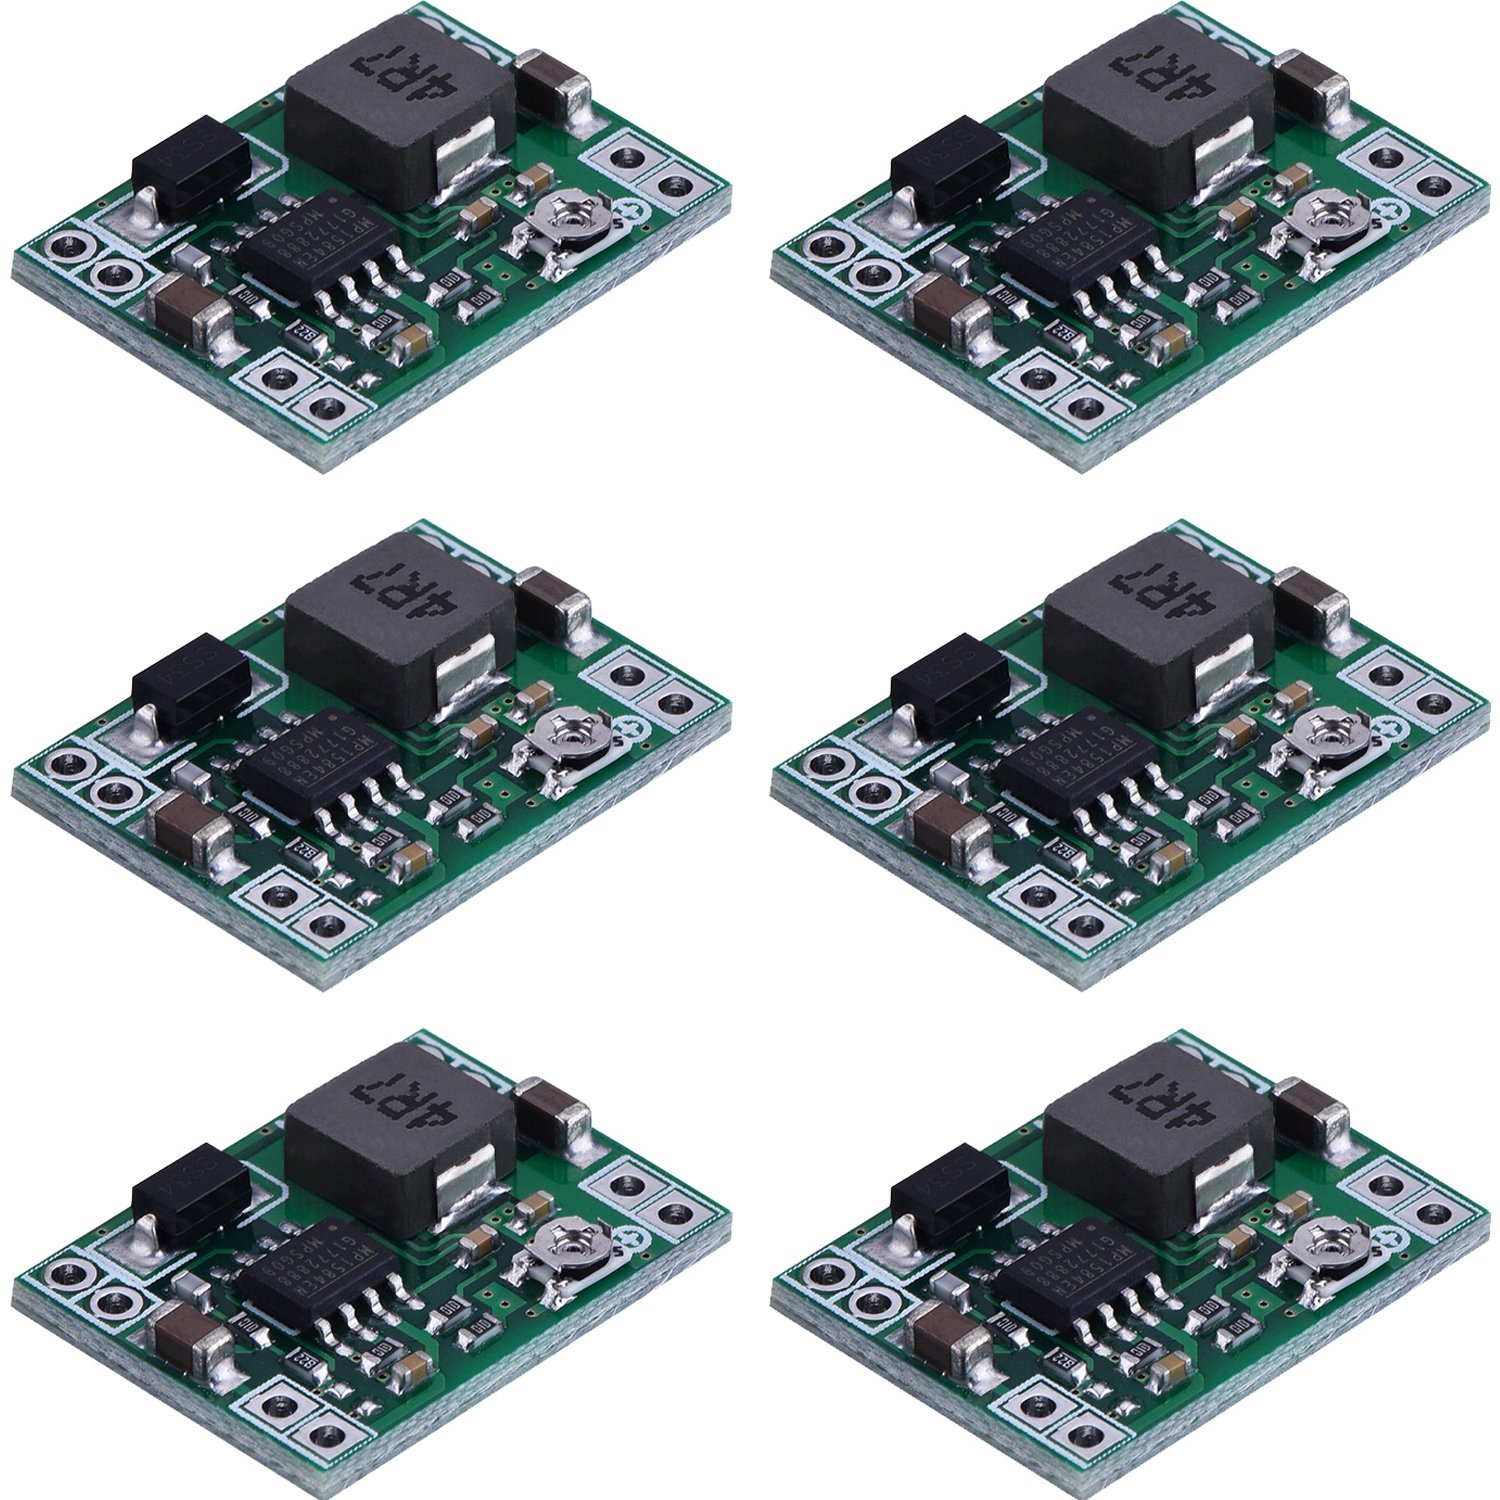 Einstellbar Dc Buck Converter Step Down Modul 24v Adjustable 15a 15 Mhz Switching Regulator Elektronik